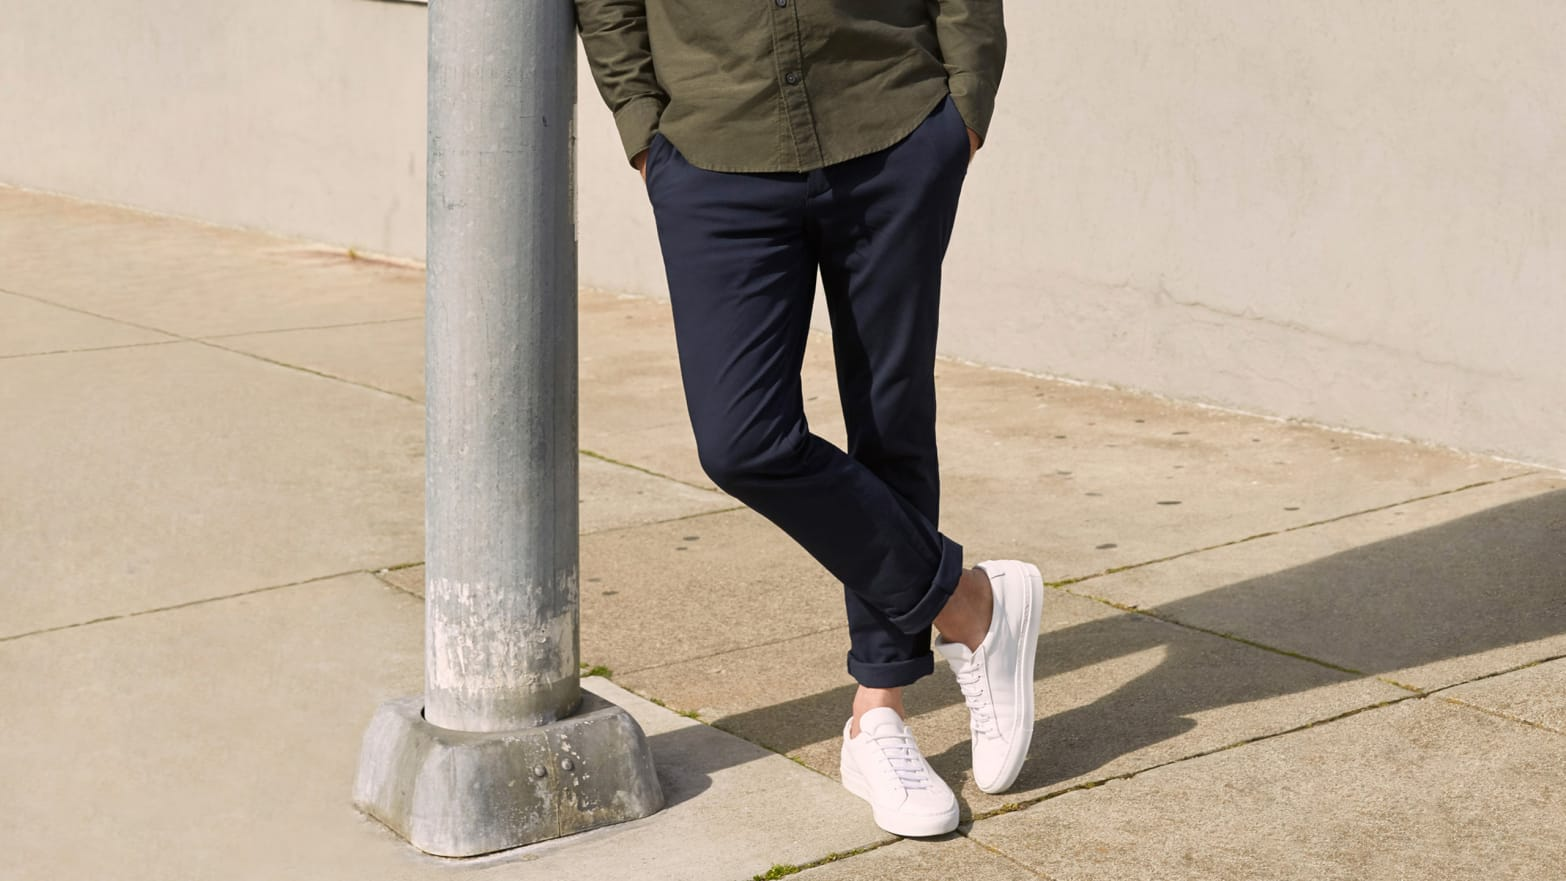 4e23724fbc The 6 Best Men's Athleisure Pants That Work for Work From Lululemon,  Everlane, Hill City, and More